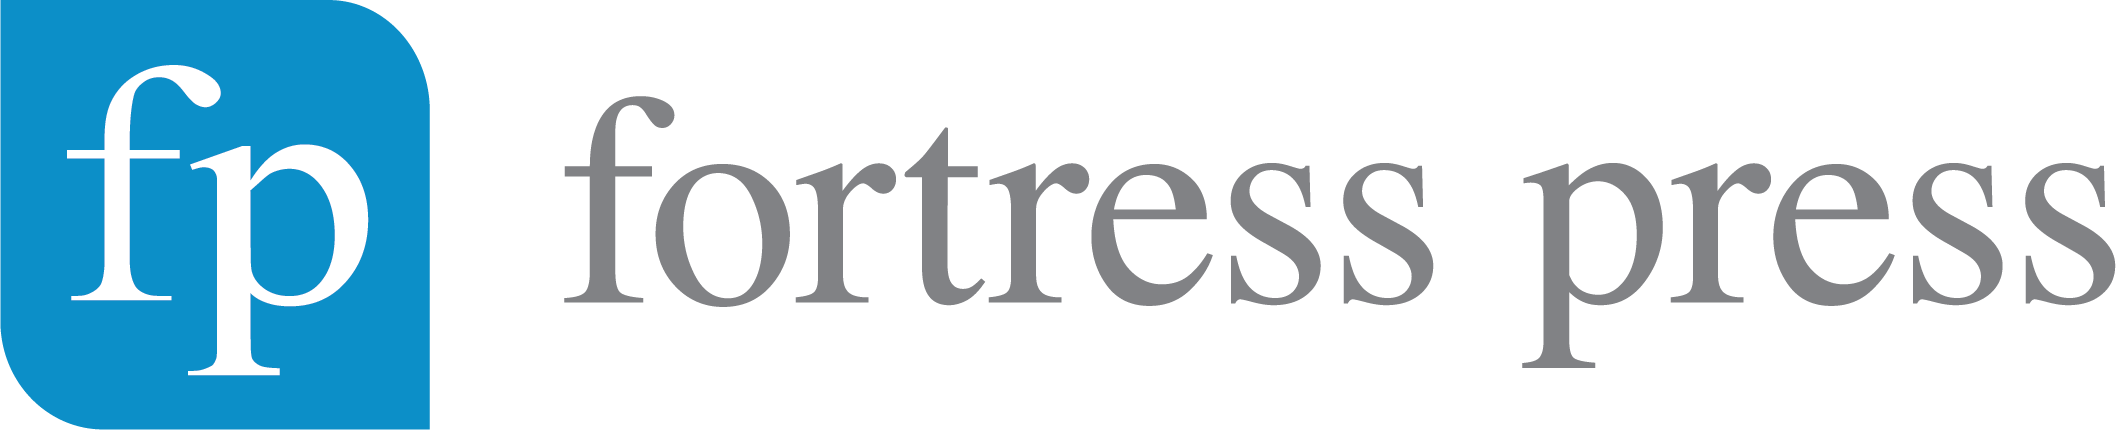 Fortress Press logo